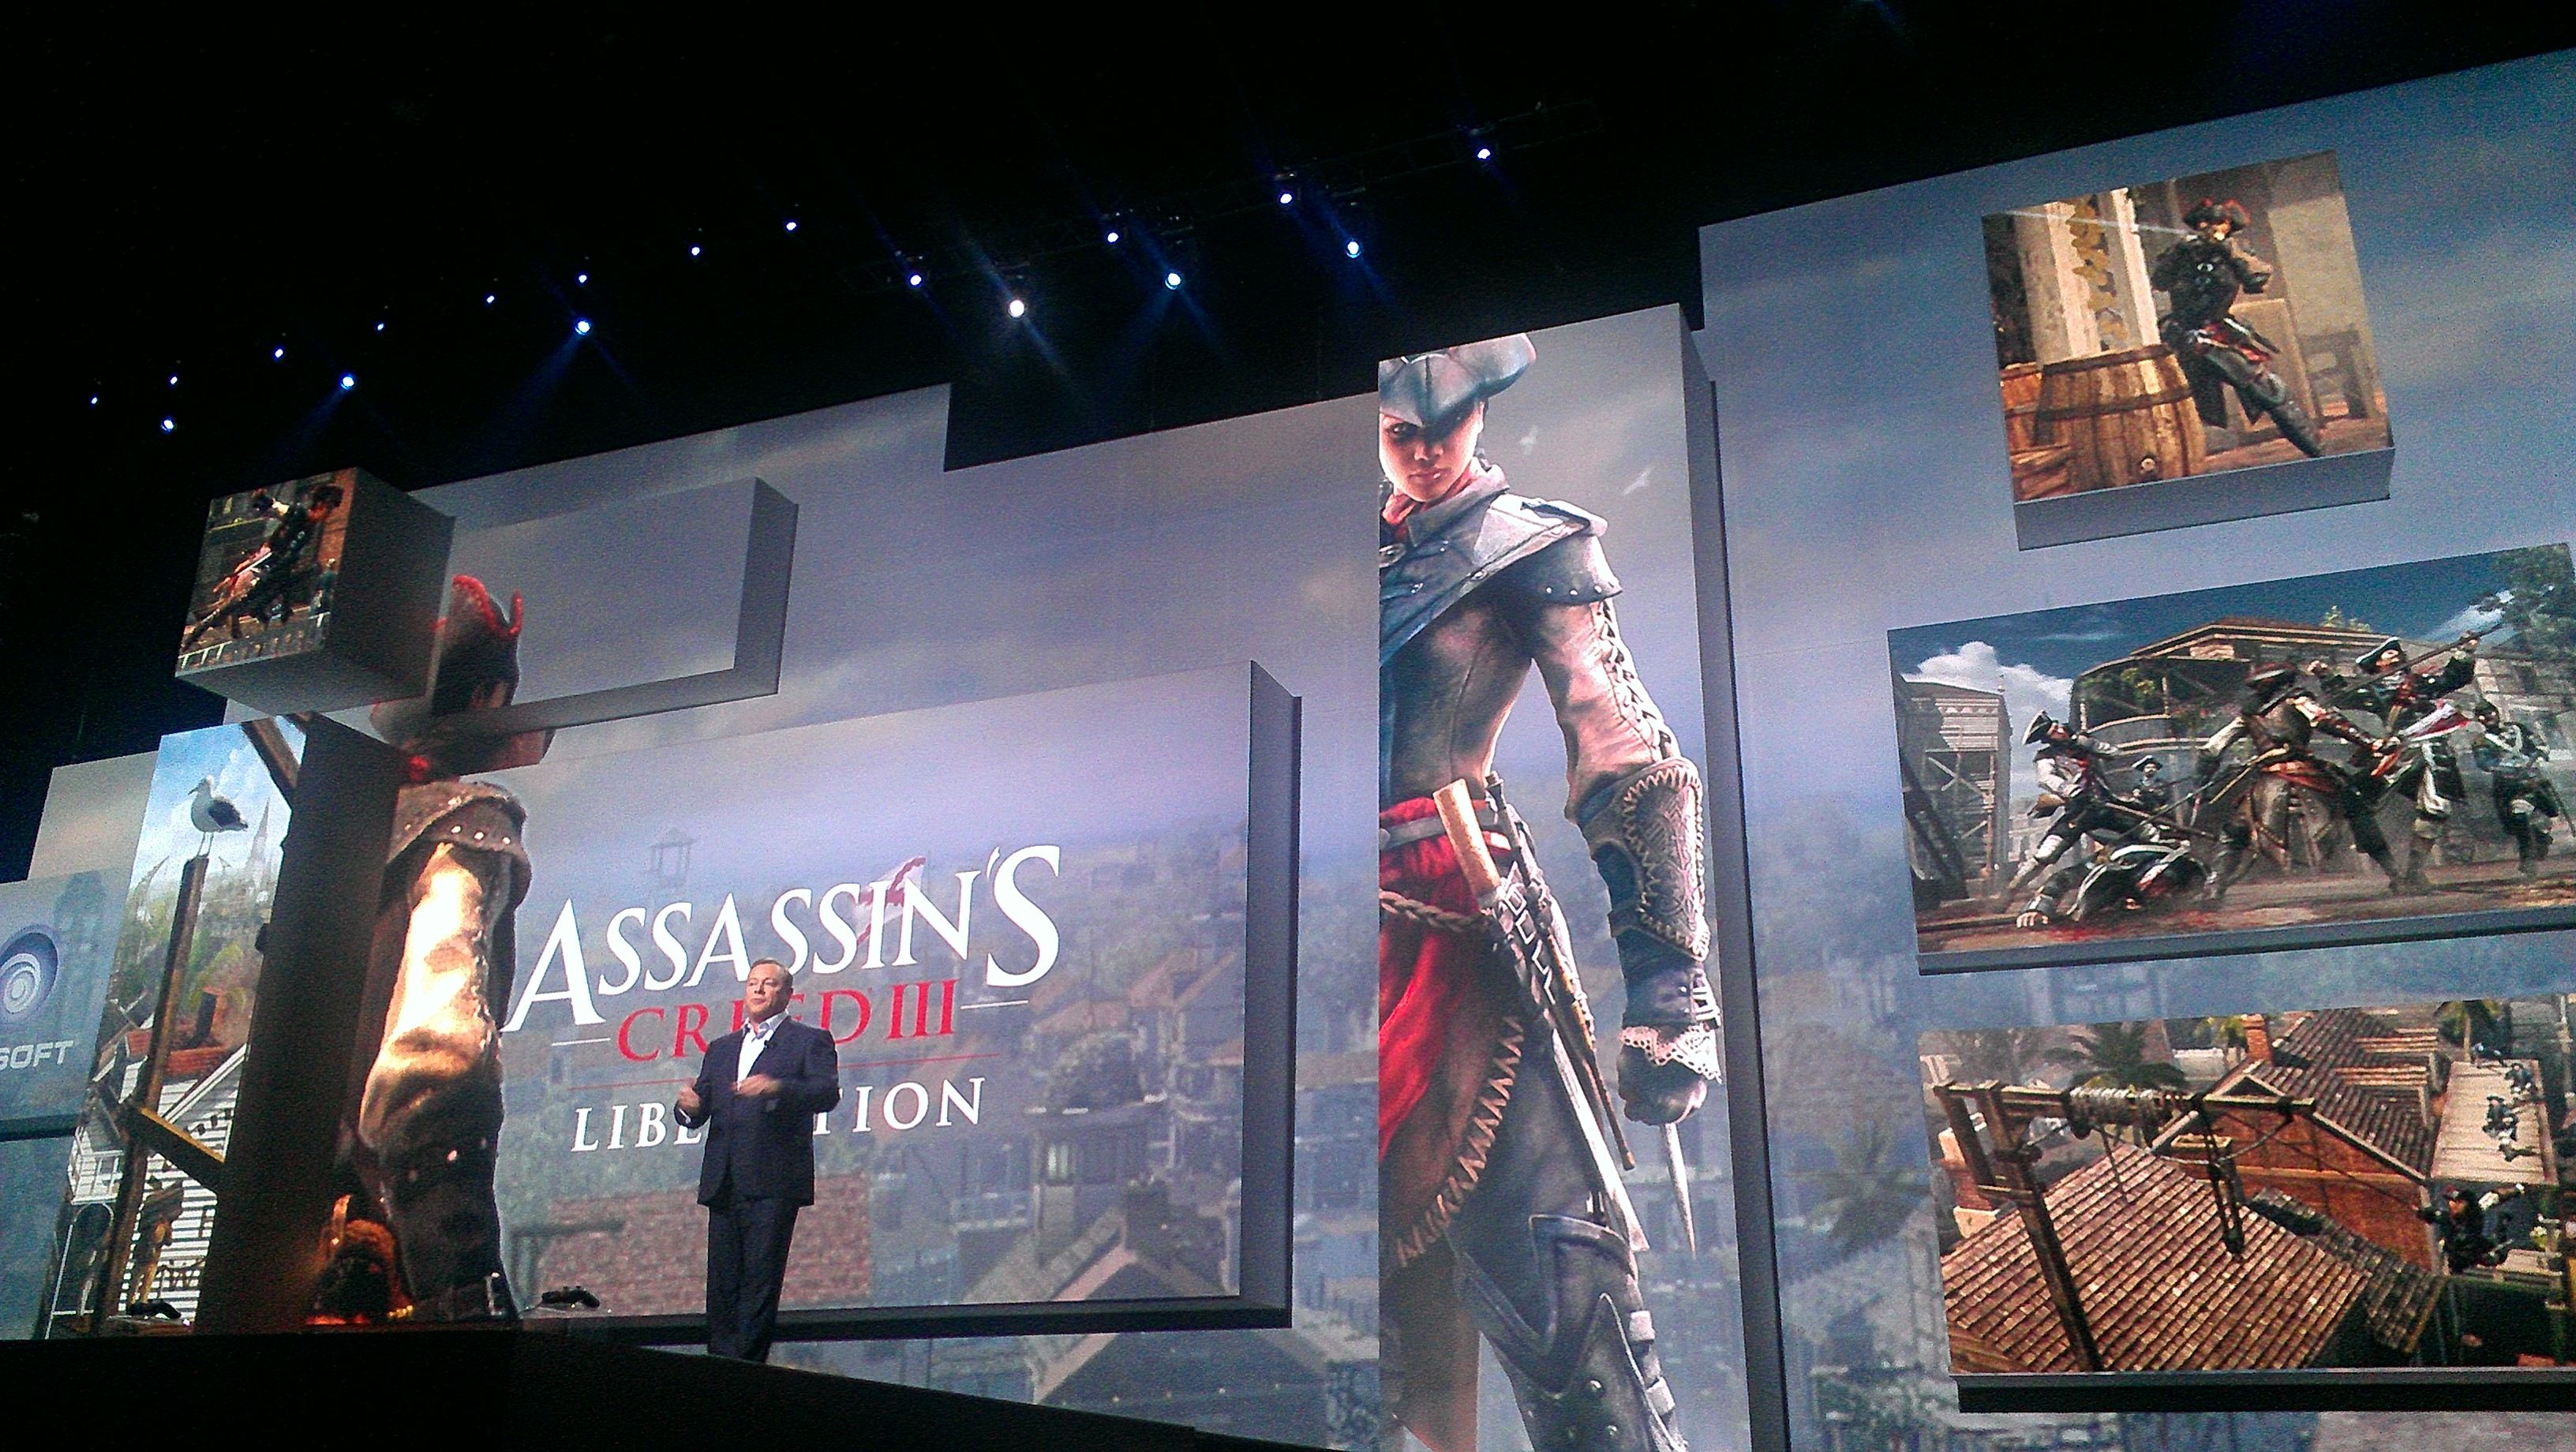 Assassin's Creed III Gets a Season Pass, Fight the Tyranny of King Washington